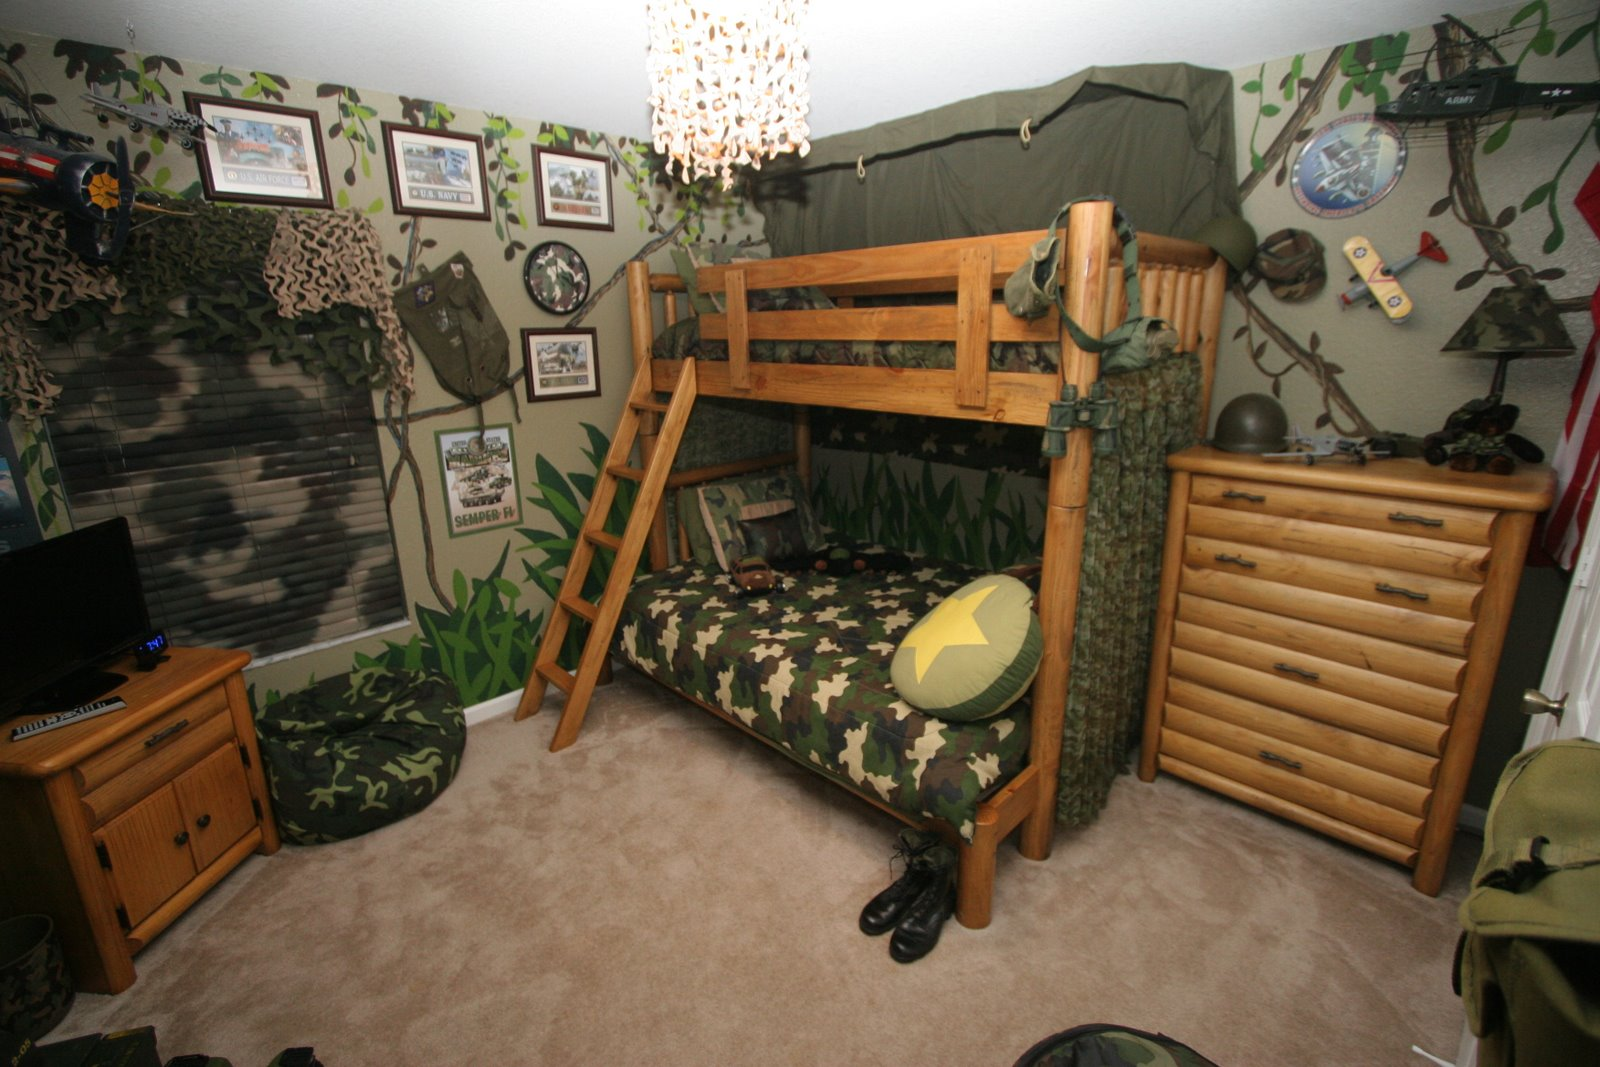 Cool bedroom designs for boys - Cool Bedroom Designs For Boys 6